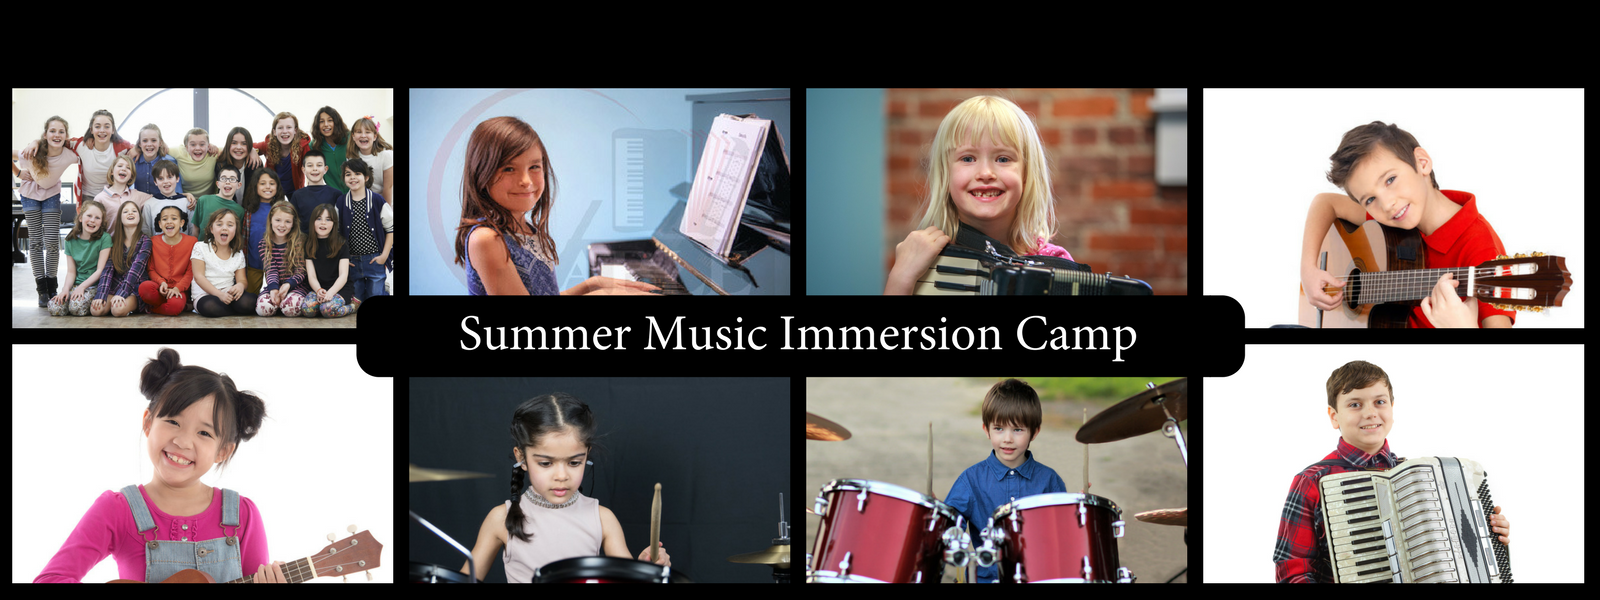 Spokane Summer Music Camp